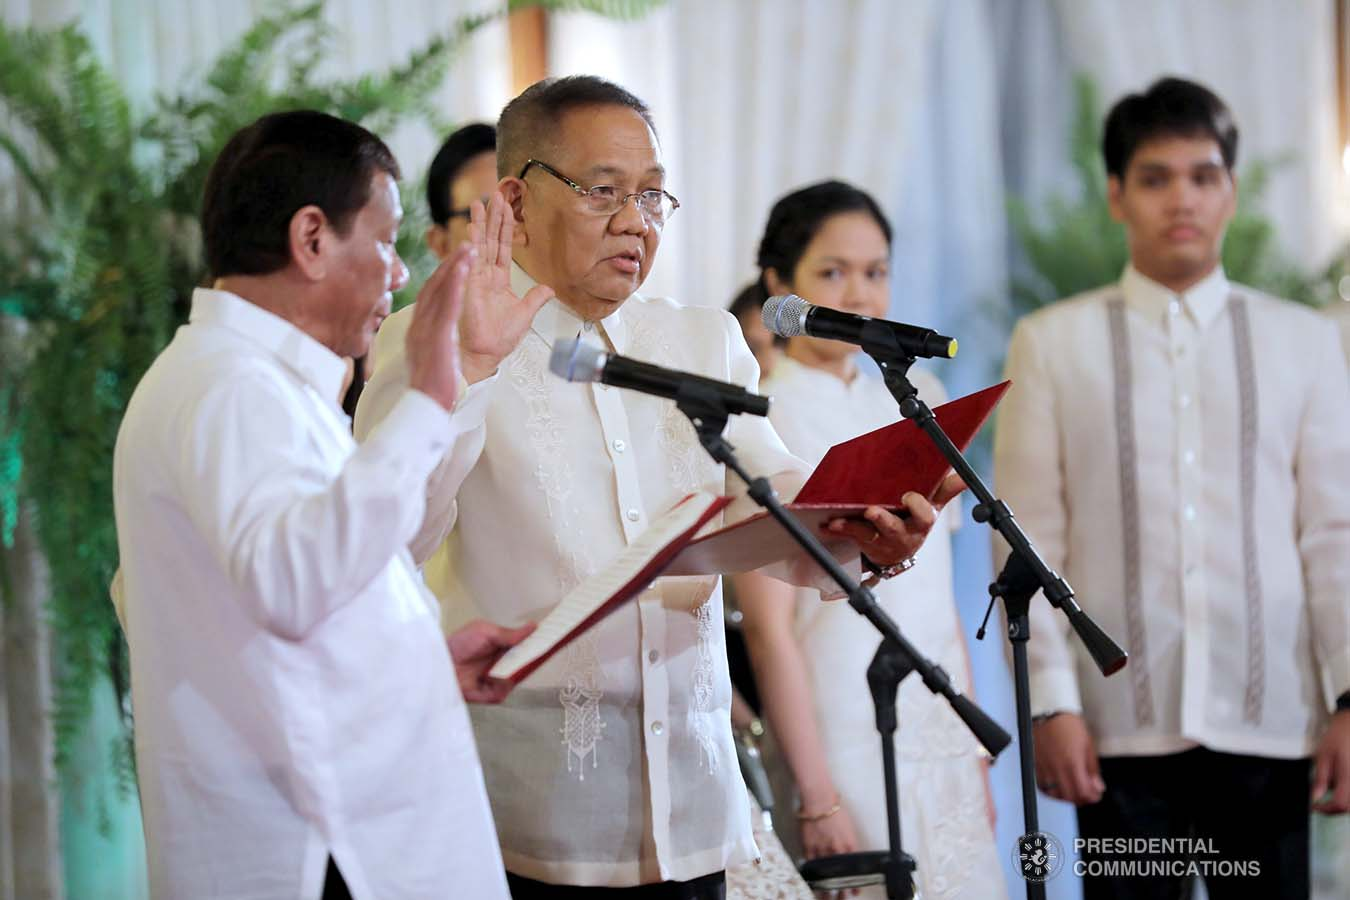 President Rodrigo Roa Duterte administers the oath to newly appointed Supreme Court Chief Justice Diosdado Peralta during a ceremony at the Malacañan Palace on October 24, 2019. ALFRED FRIAS/PRESIDENTIAL PHOTO